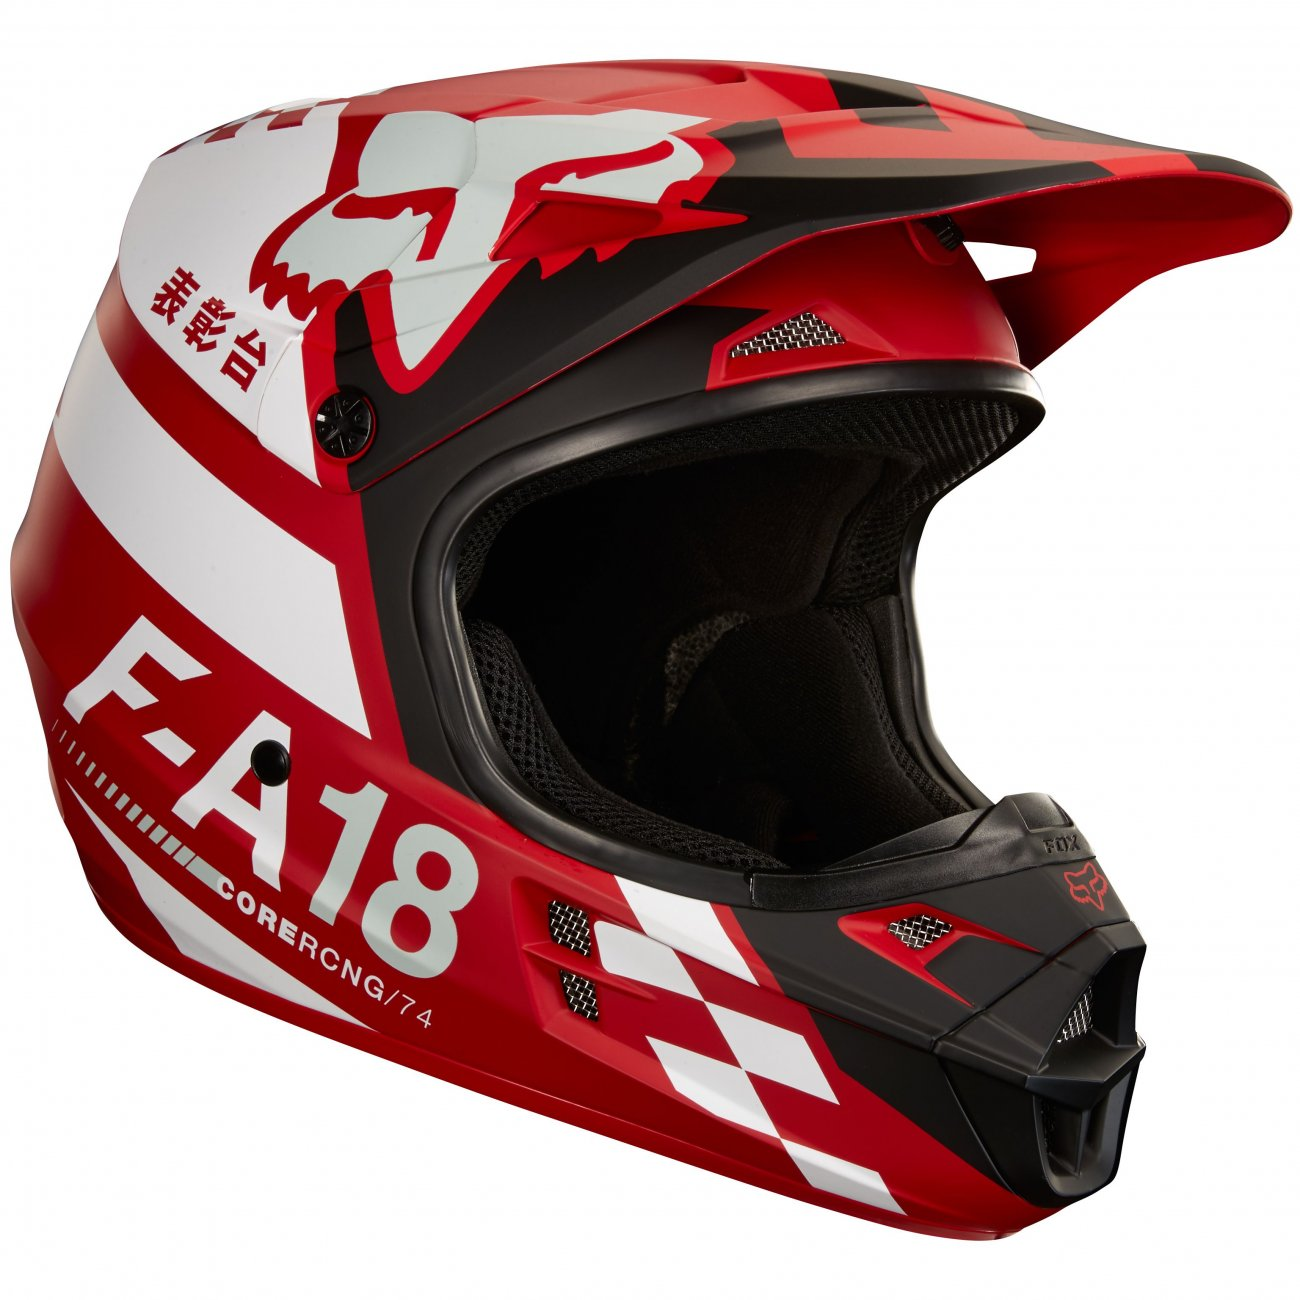 casque moto cross fox v1 sayak rouge 2018 ref fx1550 moto scooter marseille occasion moto. Black Bedroom Furniture Sets. Home Design Ideas